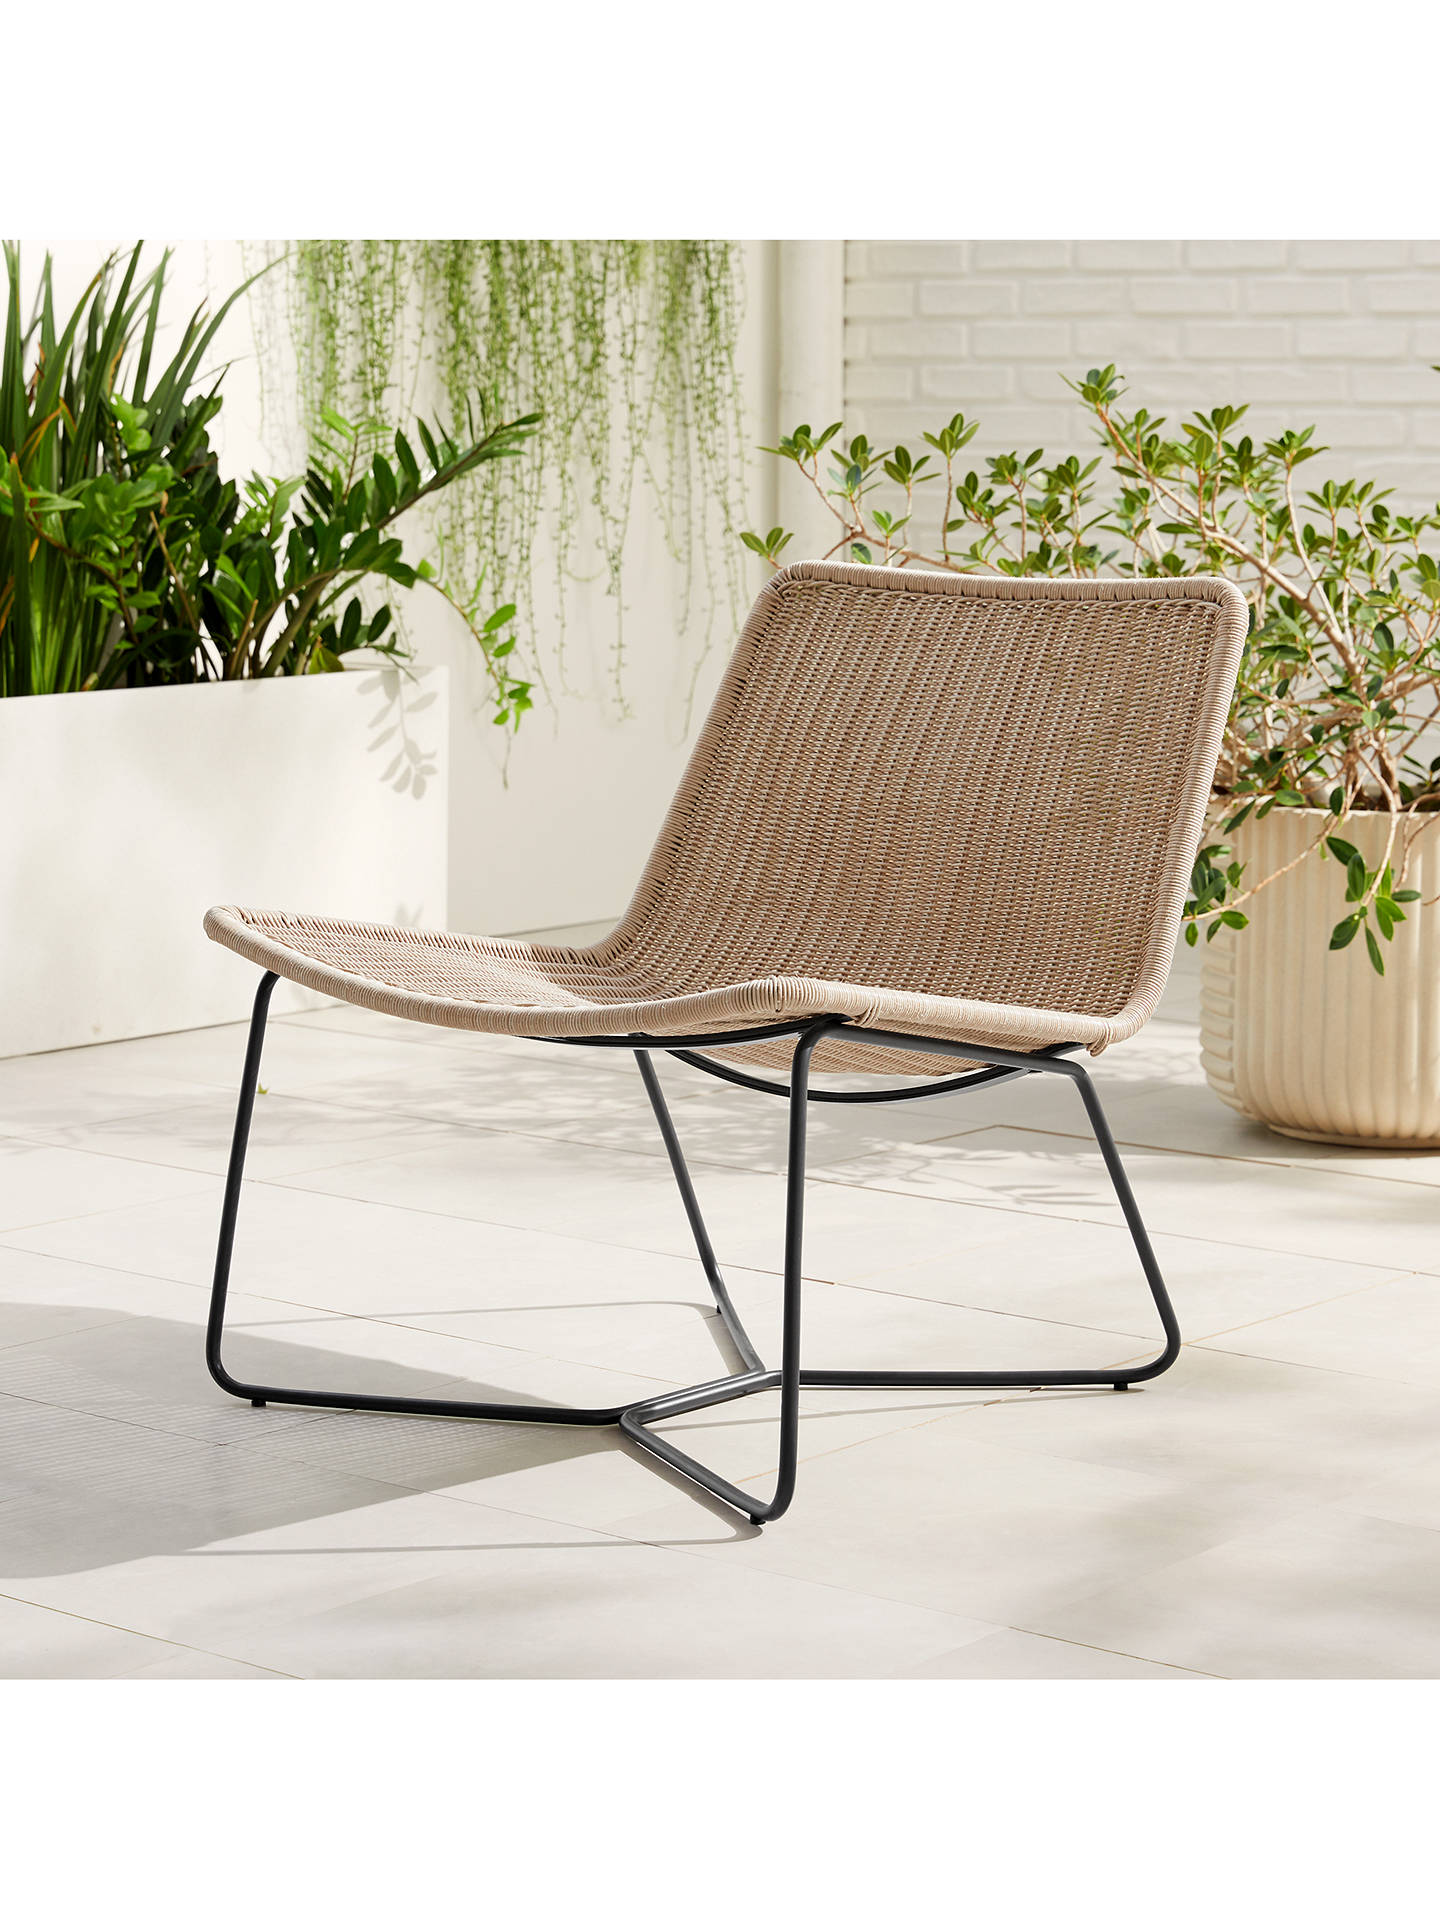 west elm Slope Garden Lounge Chair, Brown